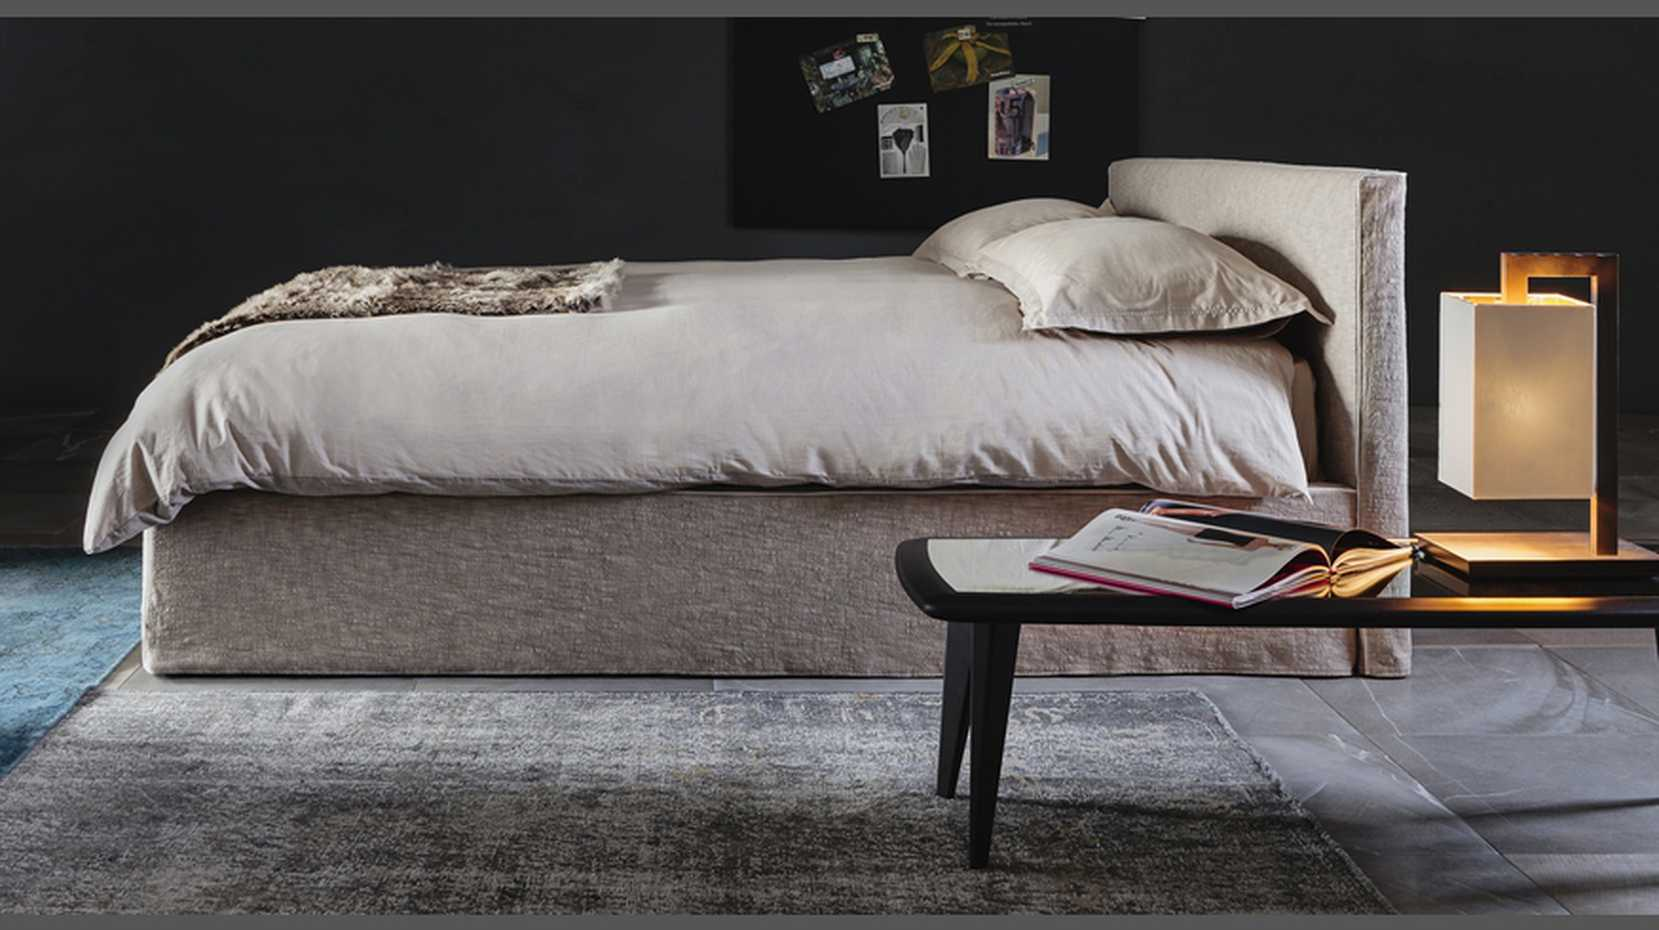 Tangram Bed by Vibieffe product image 3